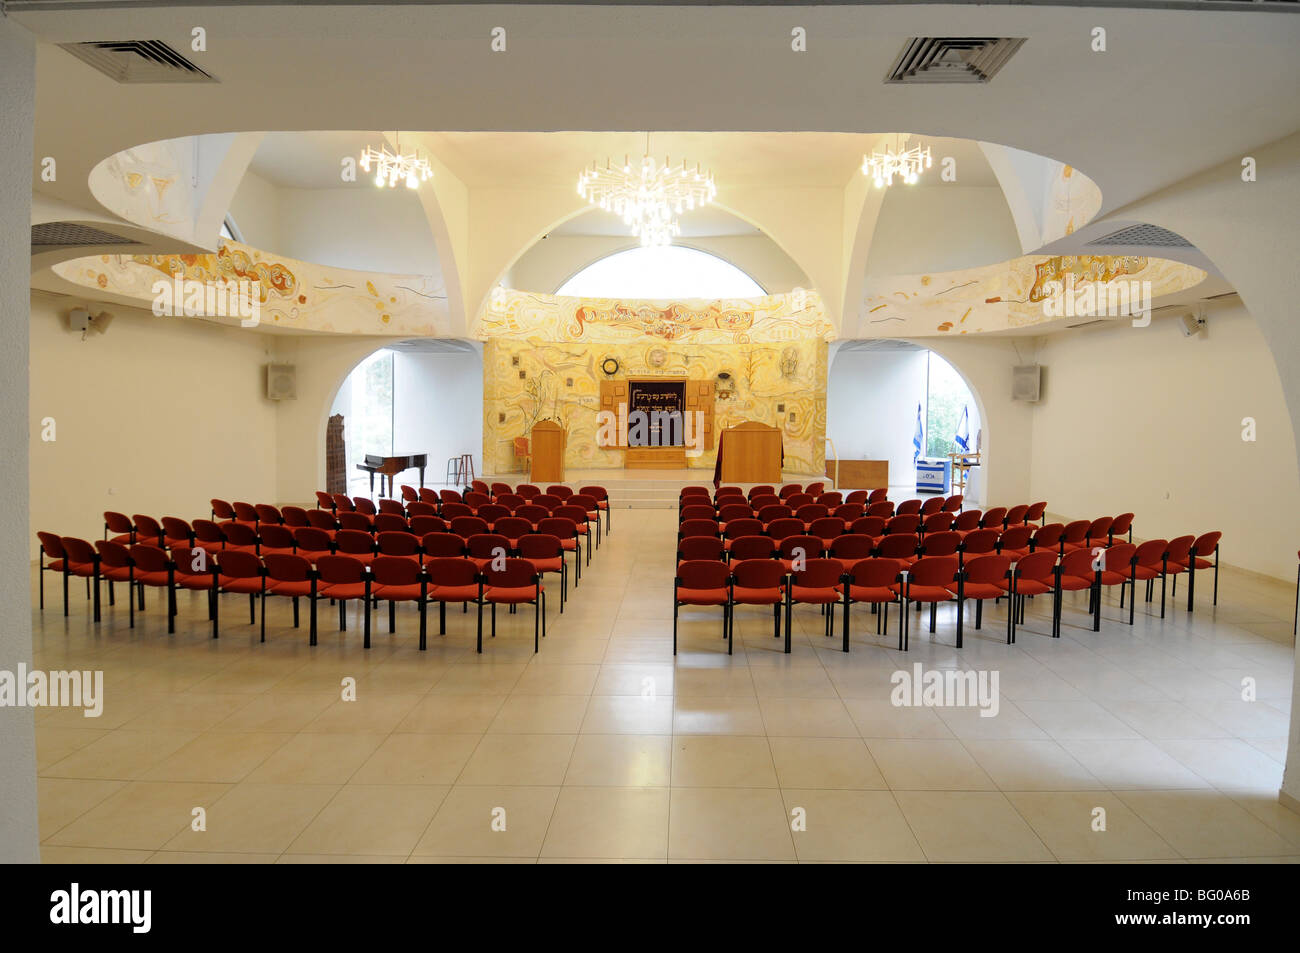 Israel, Tel Aviv, Beit Daniel, Tel Aviv's first Reform Synagogue the empty prayer hall - Stock Image